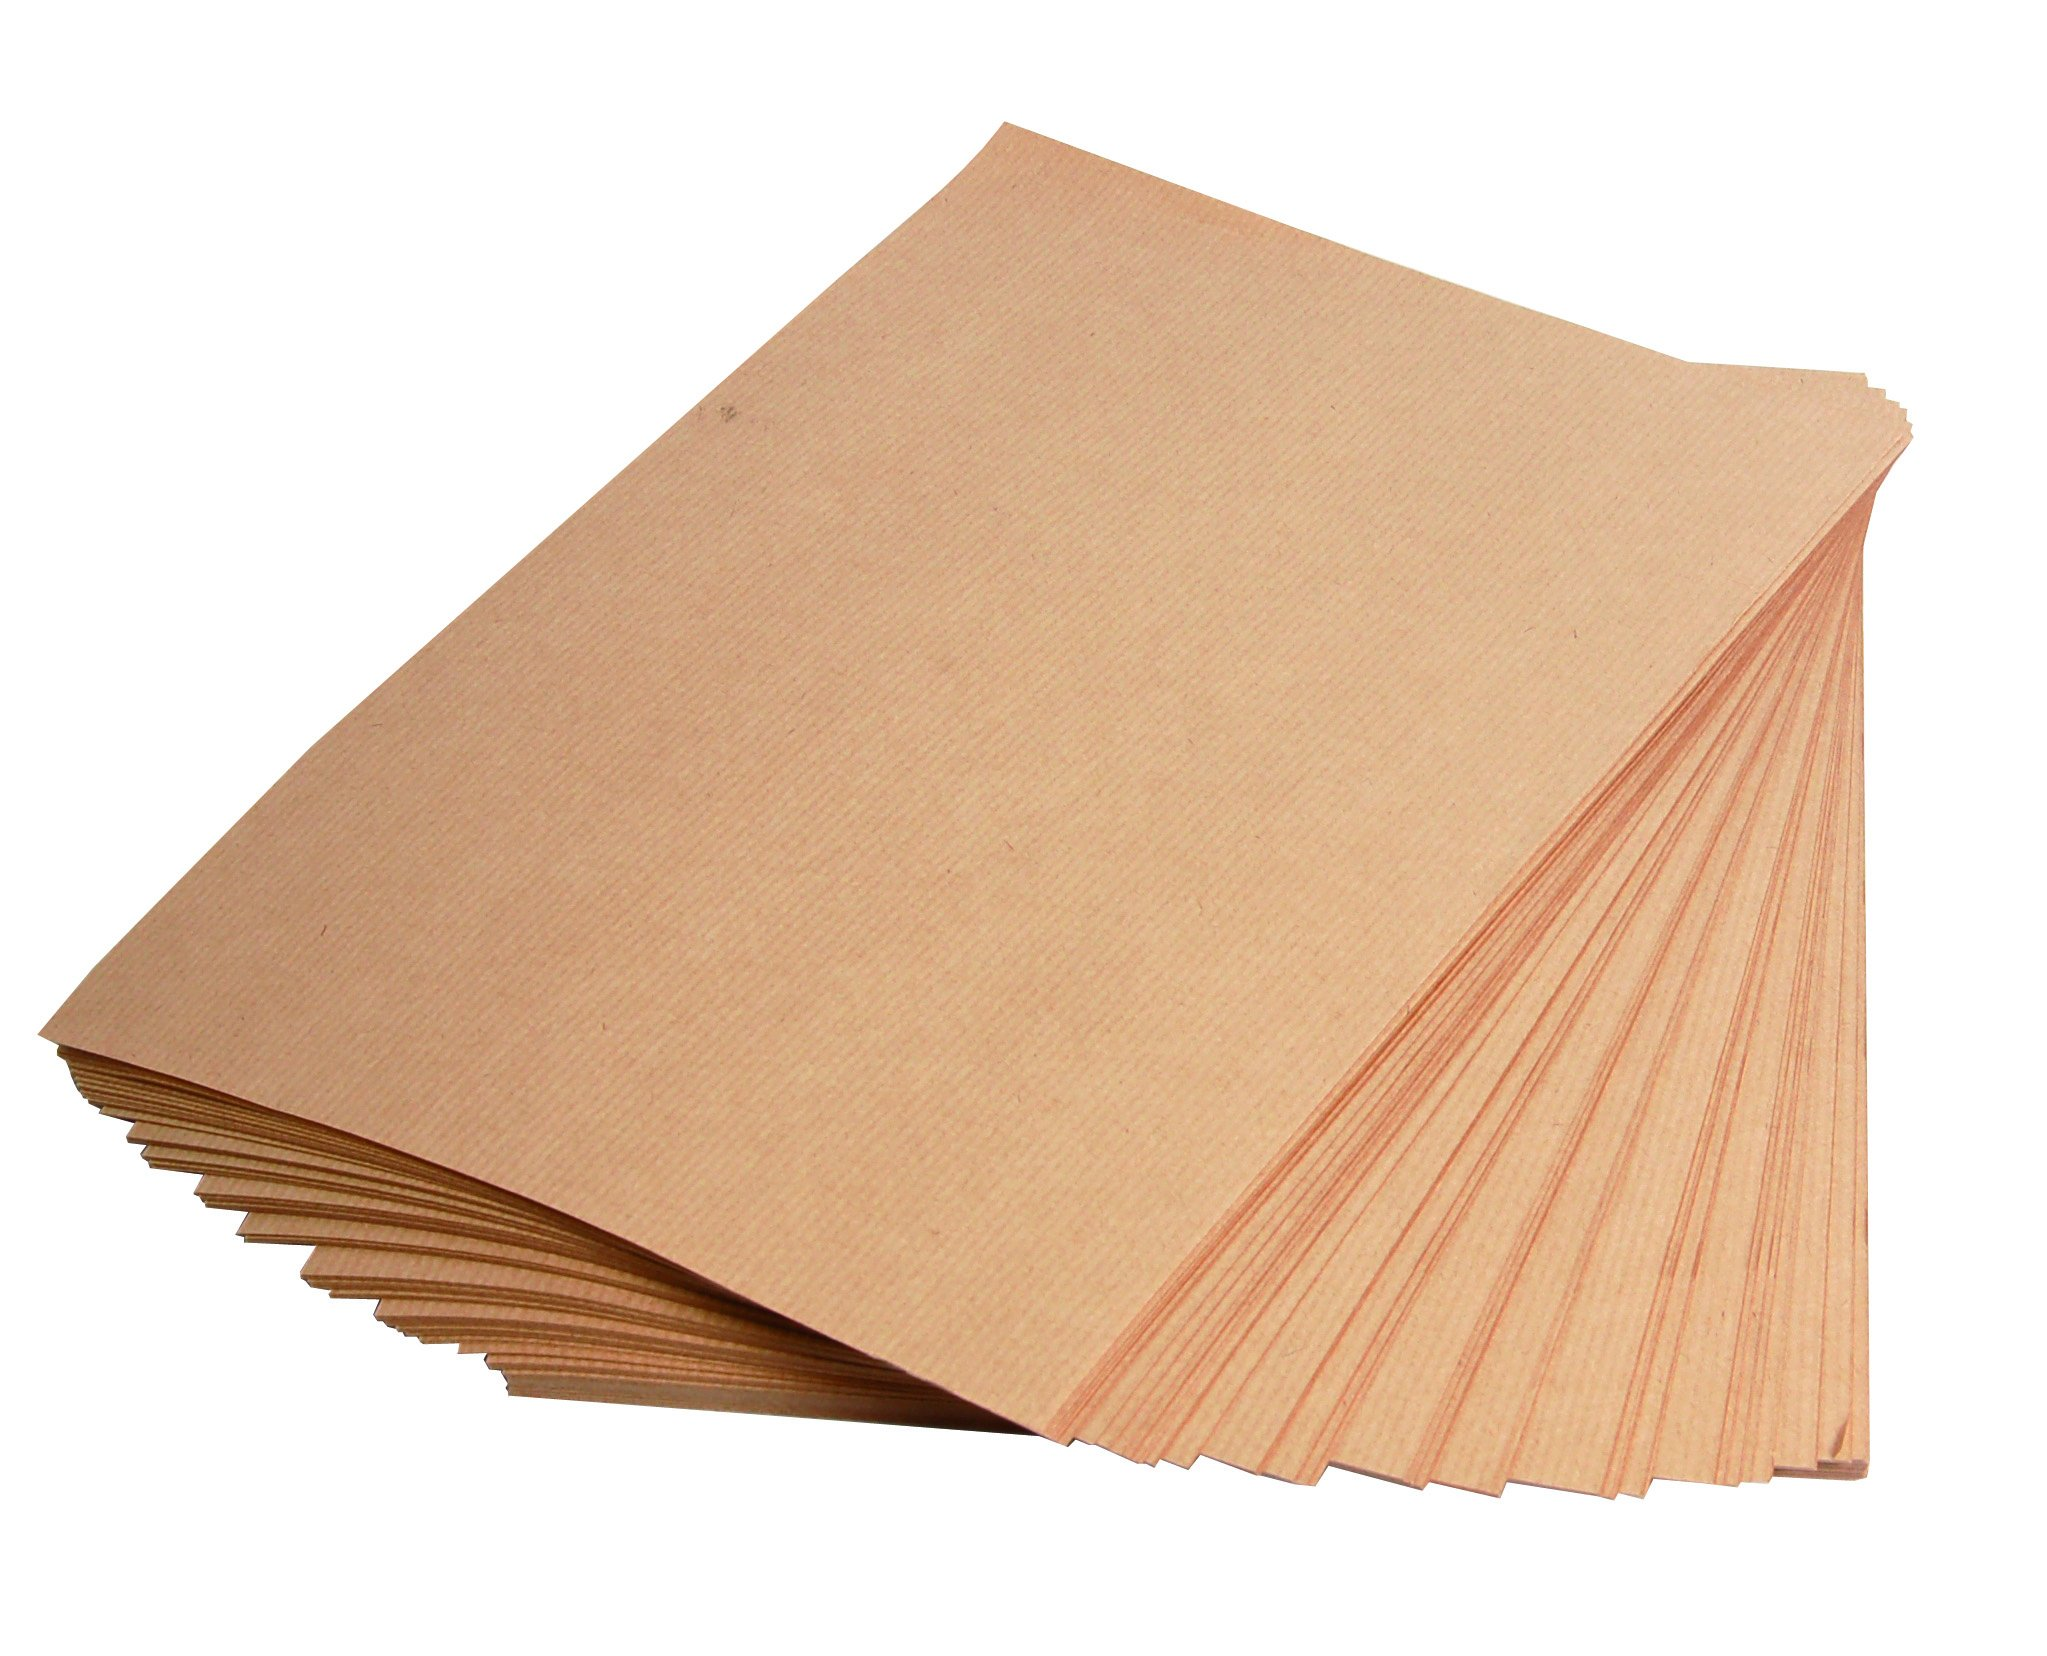 Clairefontaine Kraft Paper, 275 g, A1 - Brown, 25 Sheets